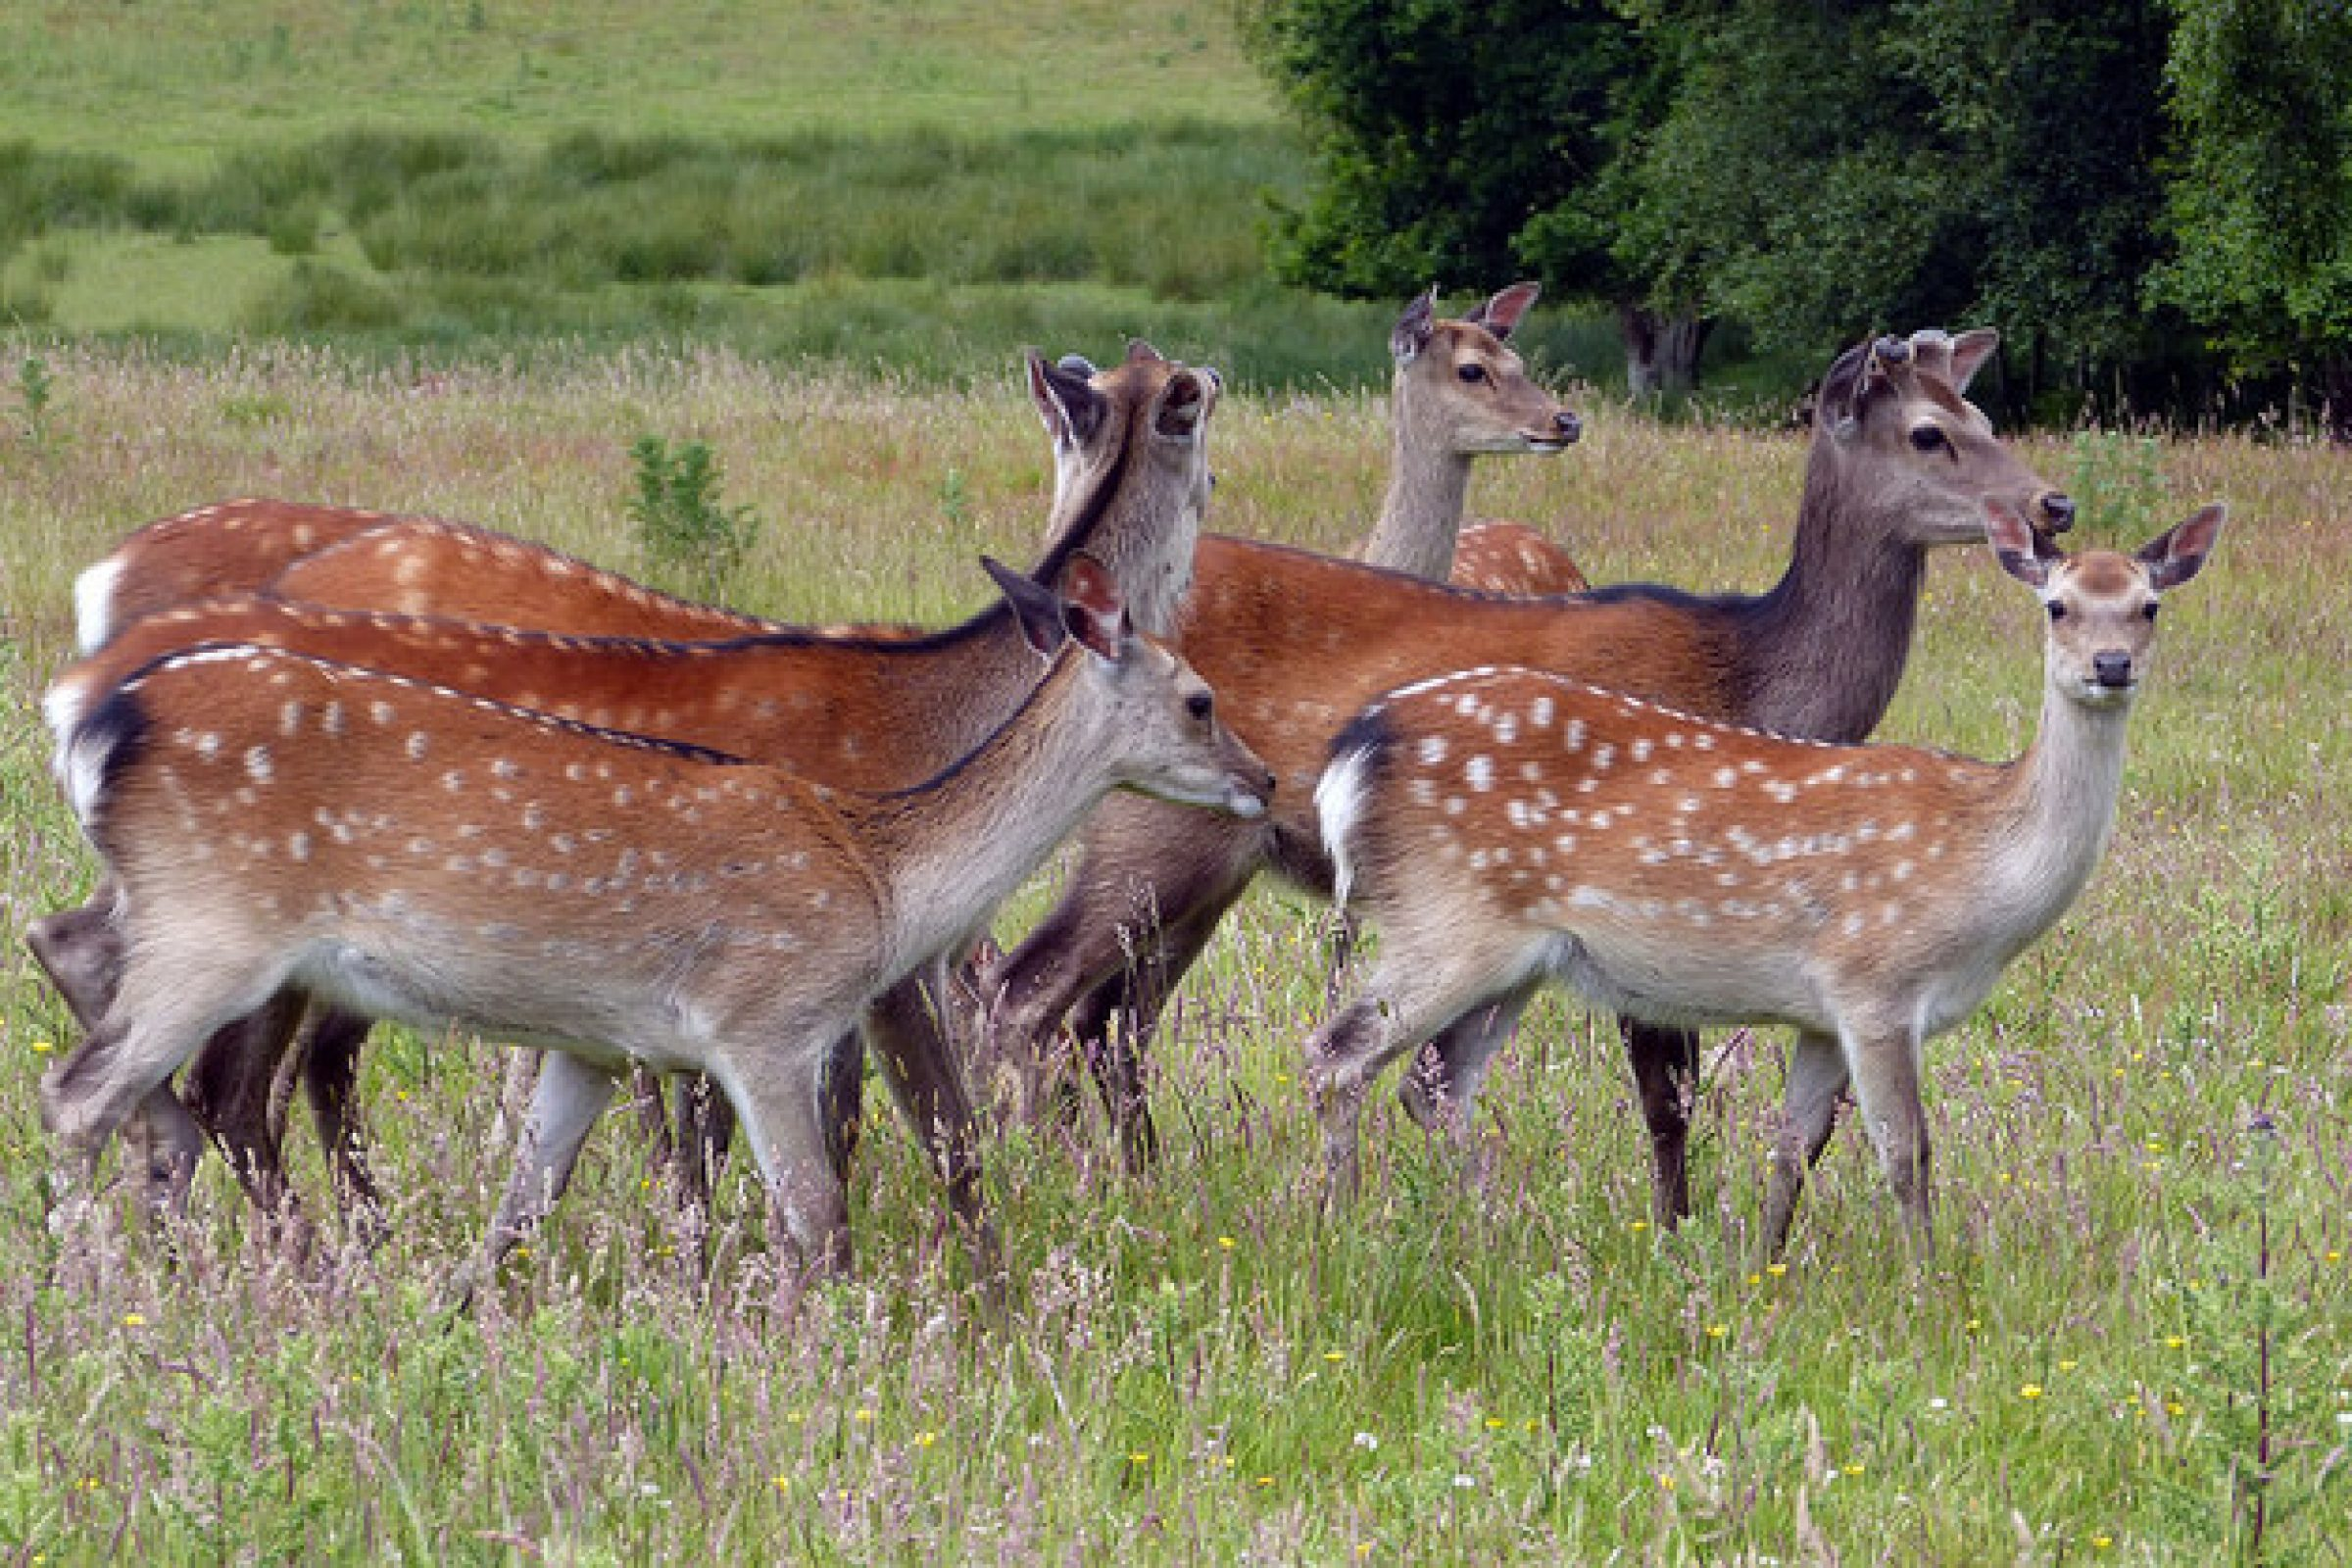 Deer at the RSPB nature reserve arne